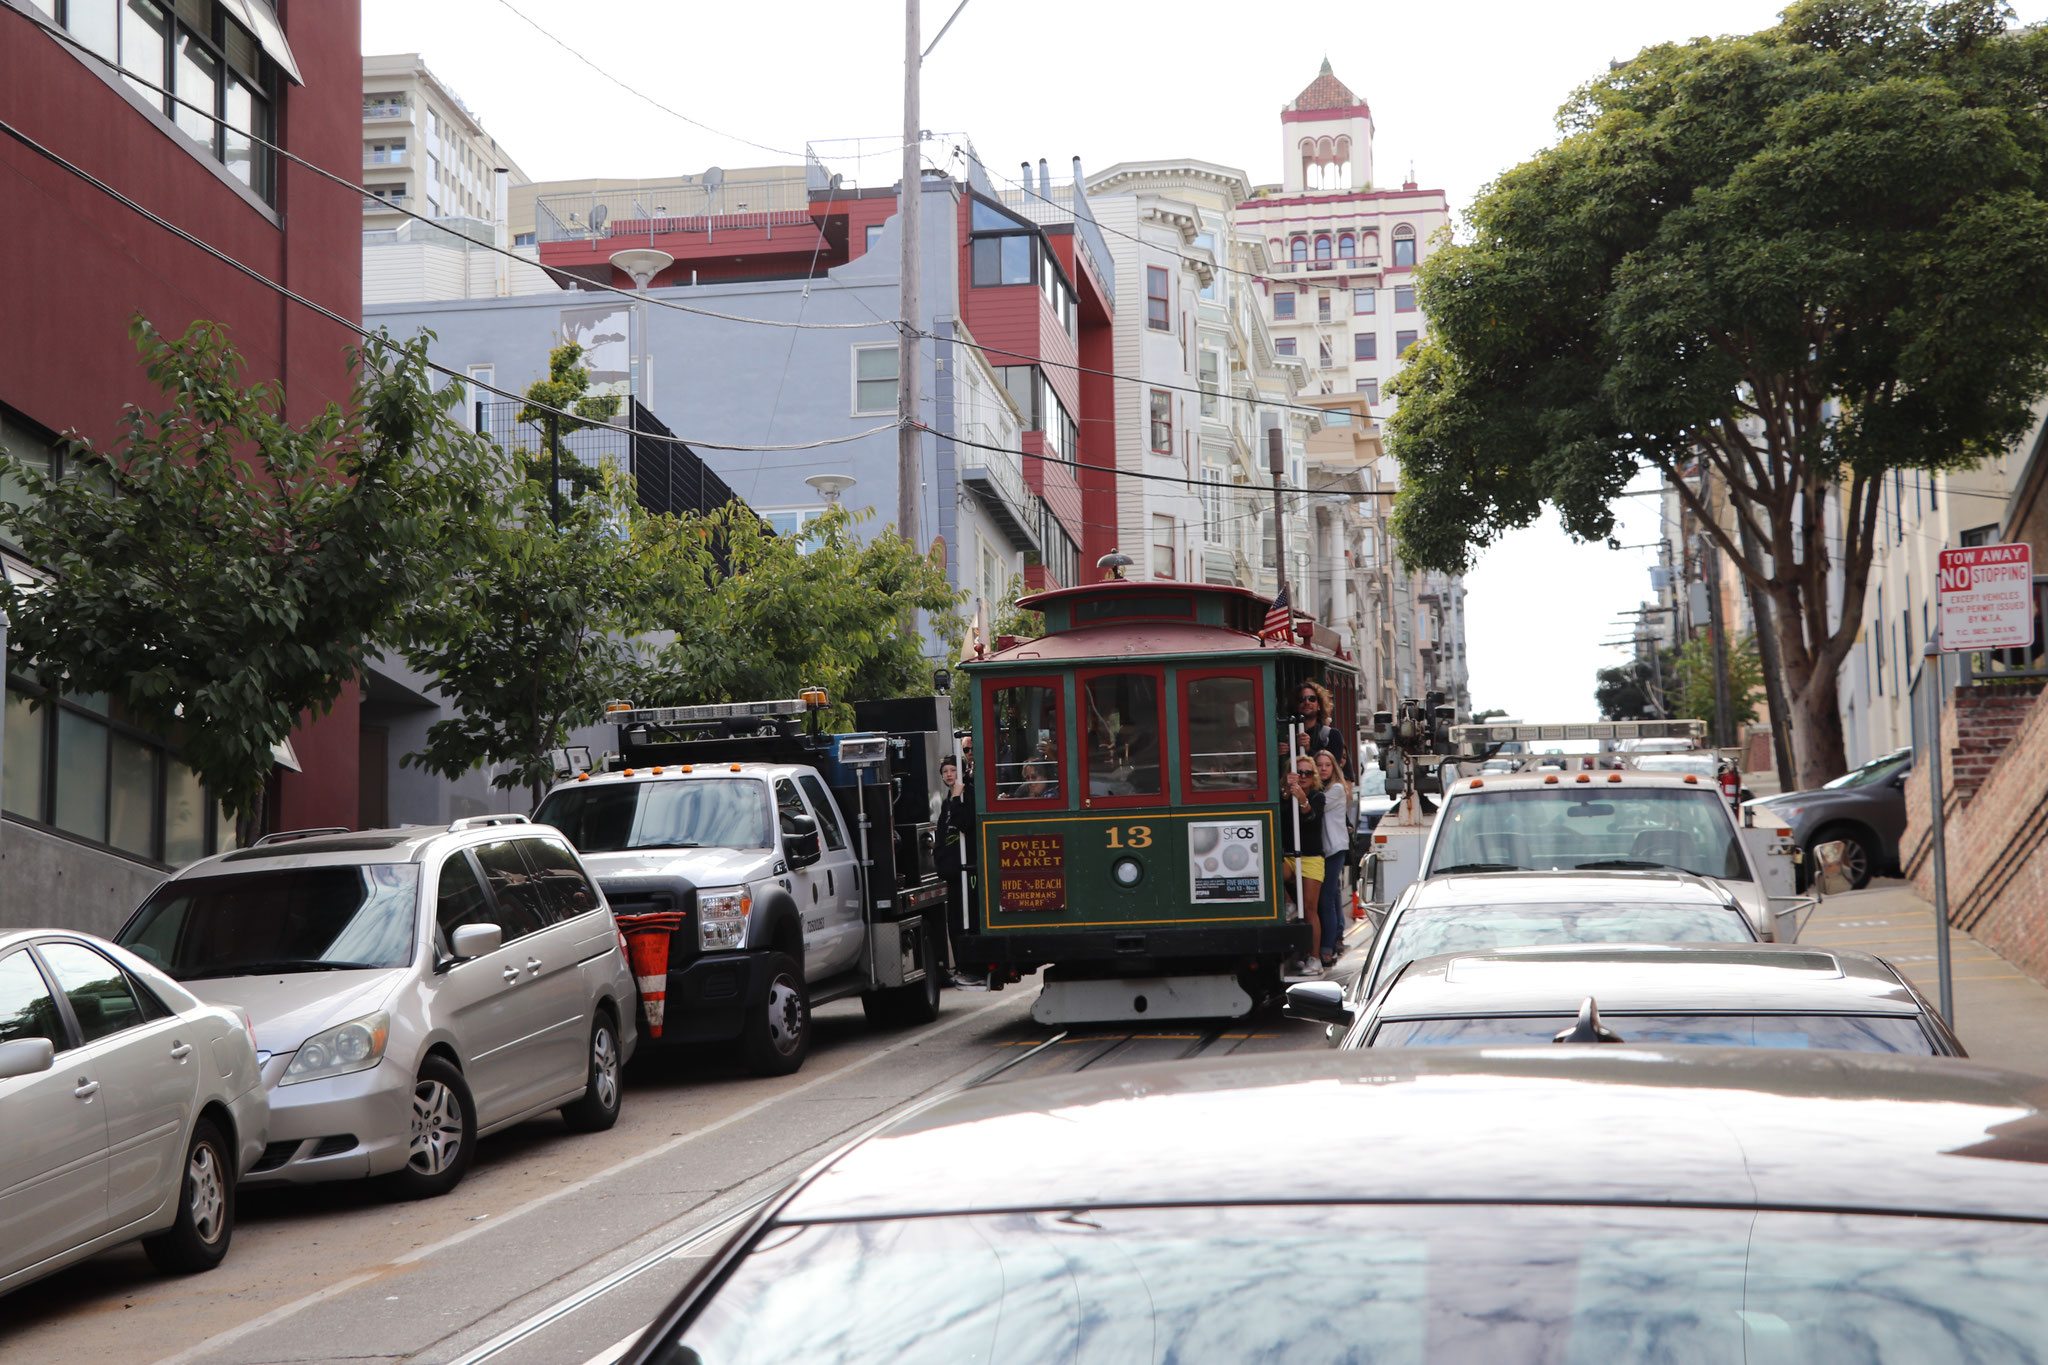 the all famous San Francisco Cable Car